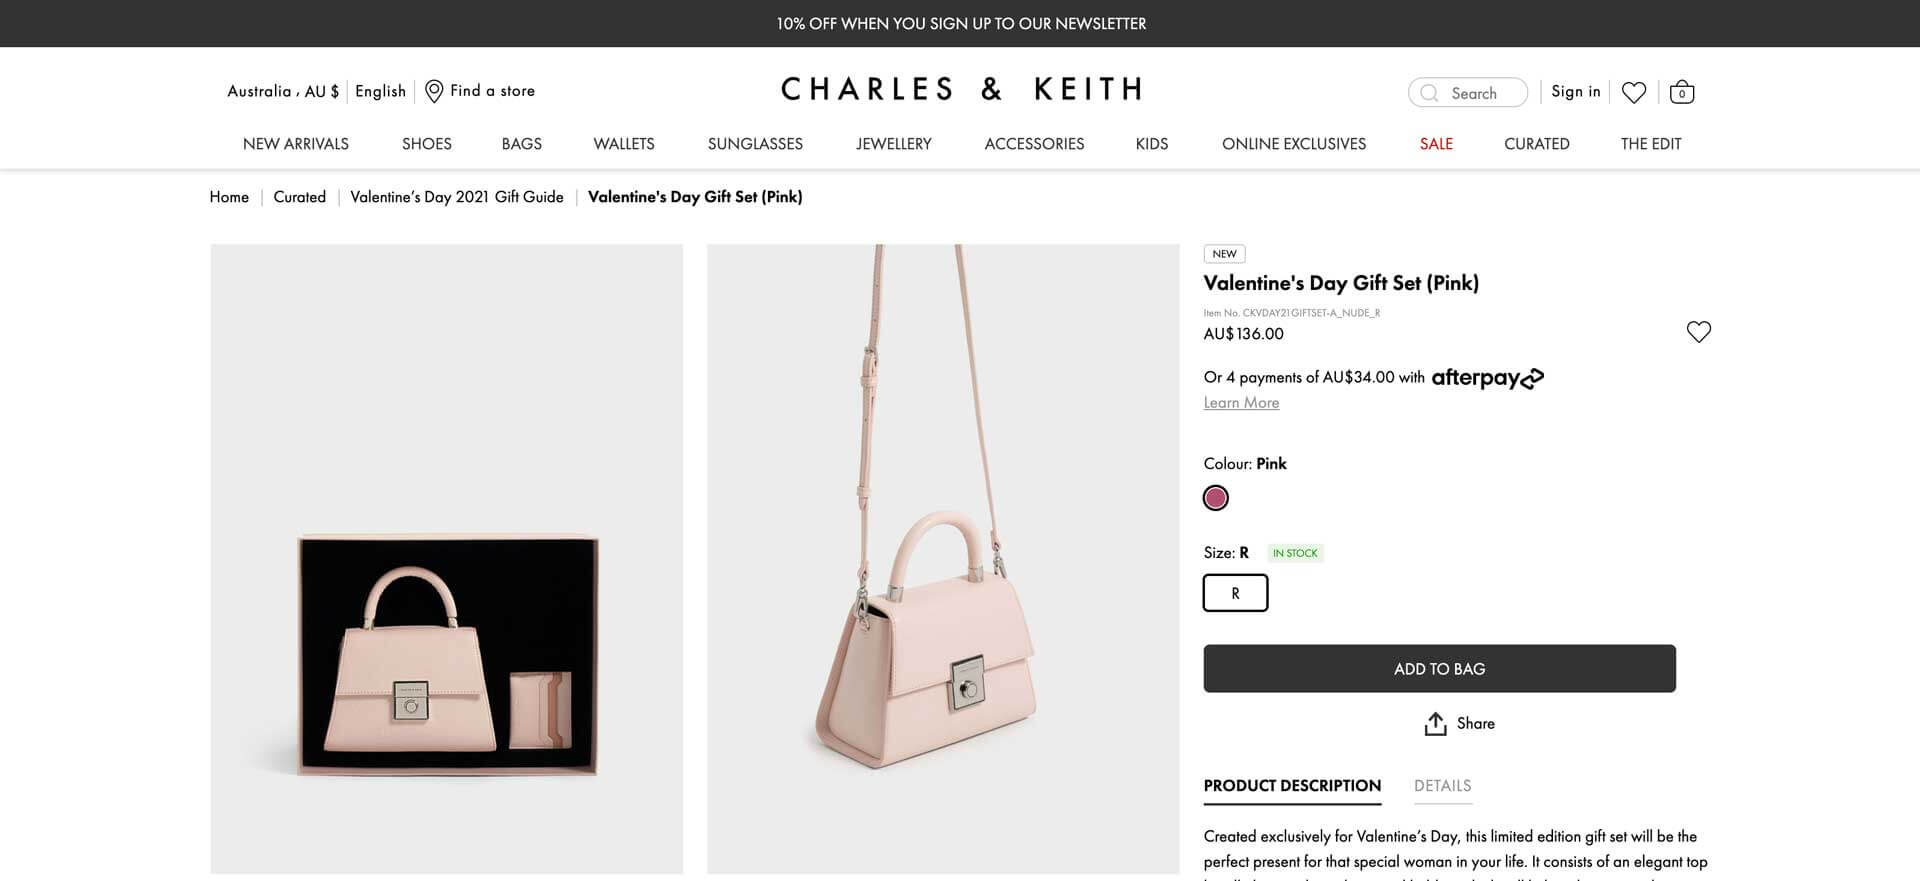 Charles & Keith Valentines Day Gift Sets